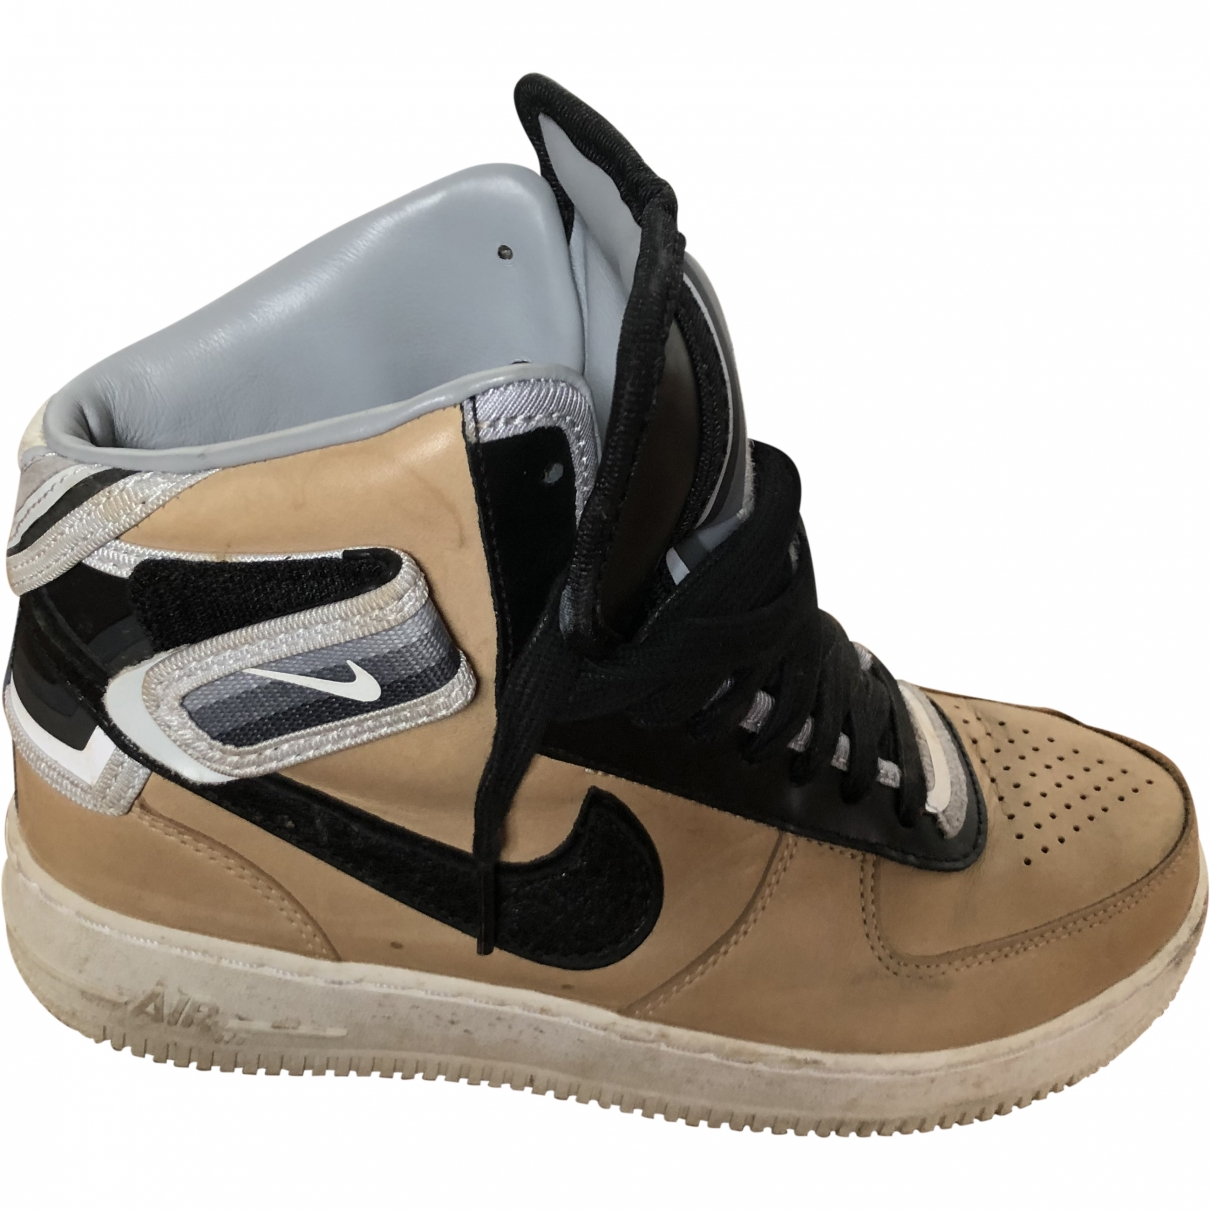 Nike By Riccardo Tisci \N Camel Leather Trainers for Women 39 EU